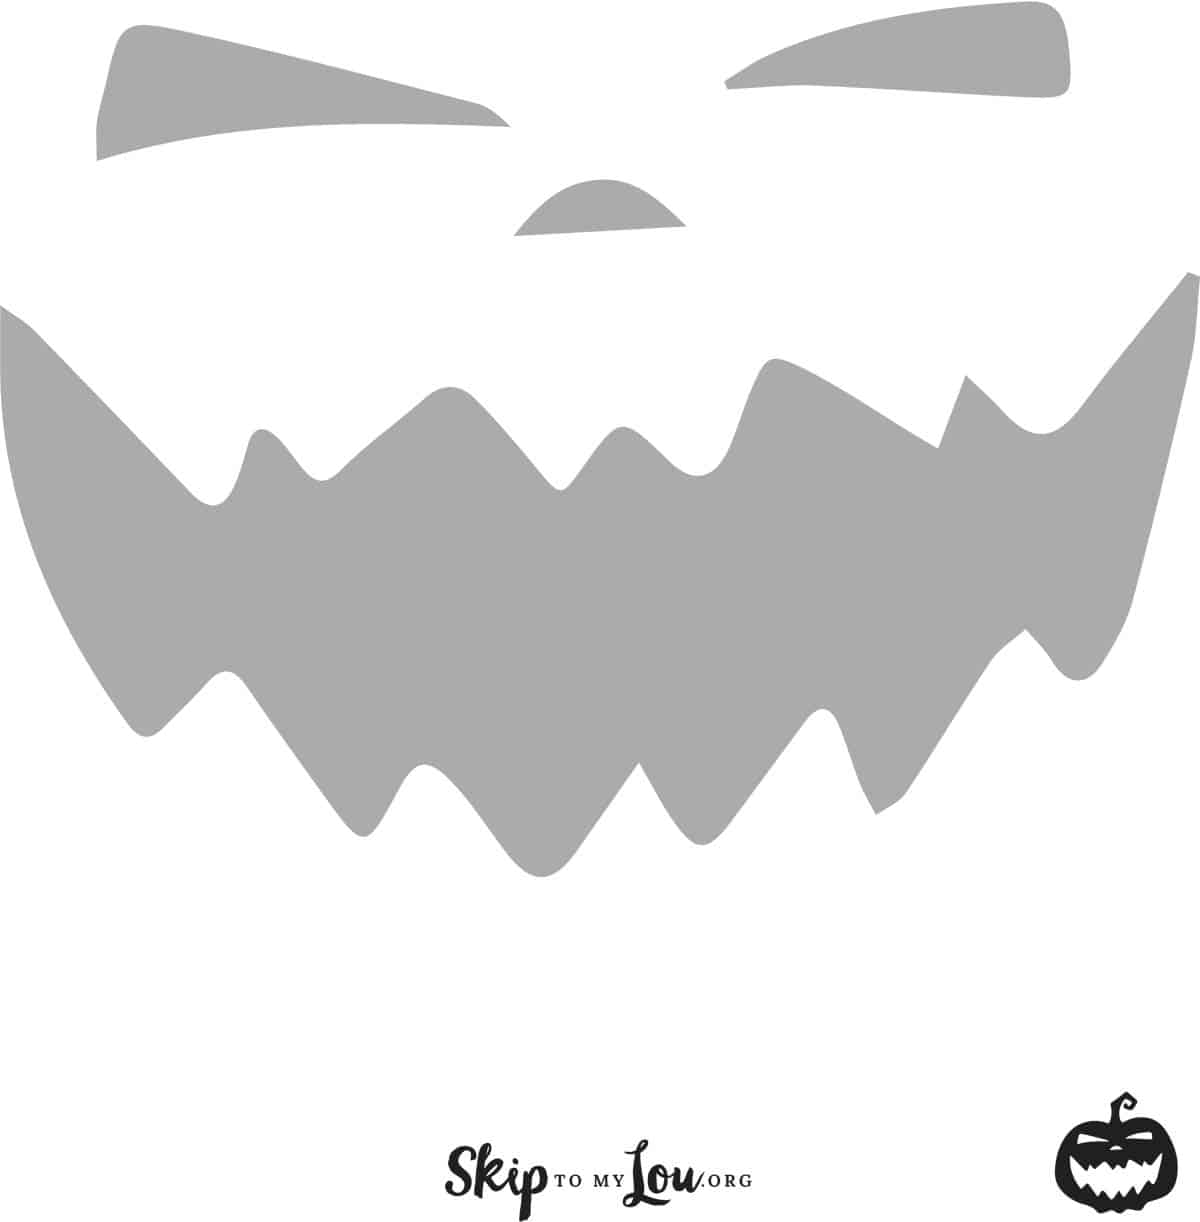 graphic relating to Pumpkin Outlines Printable named Great No cost printable pumpkin carving stencils - Pass up toward my Lou